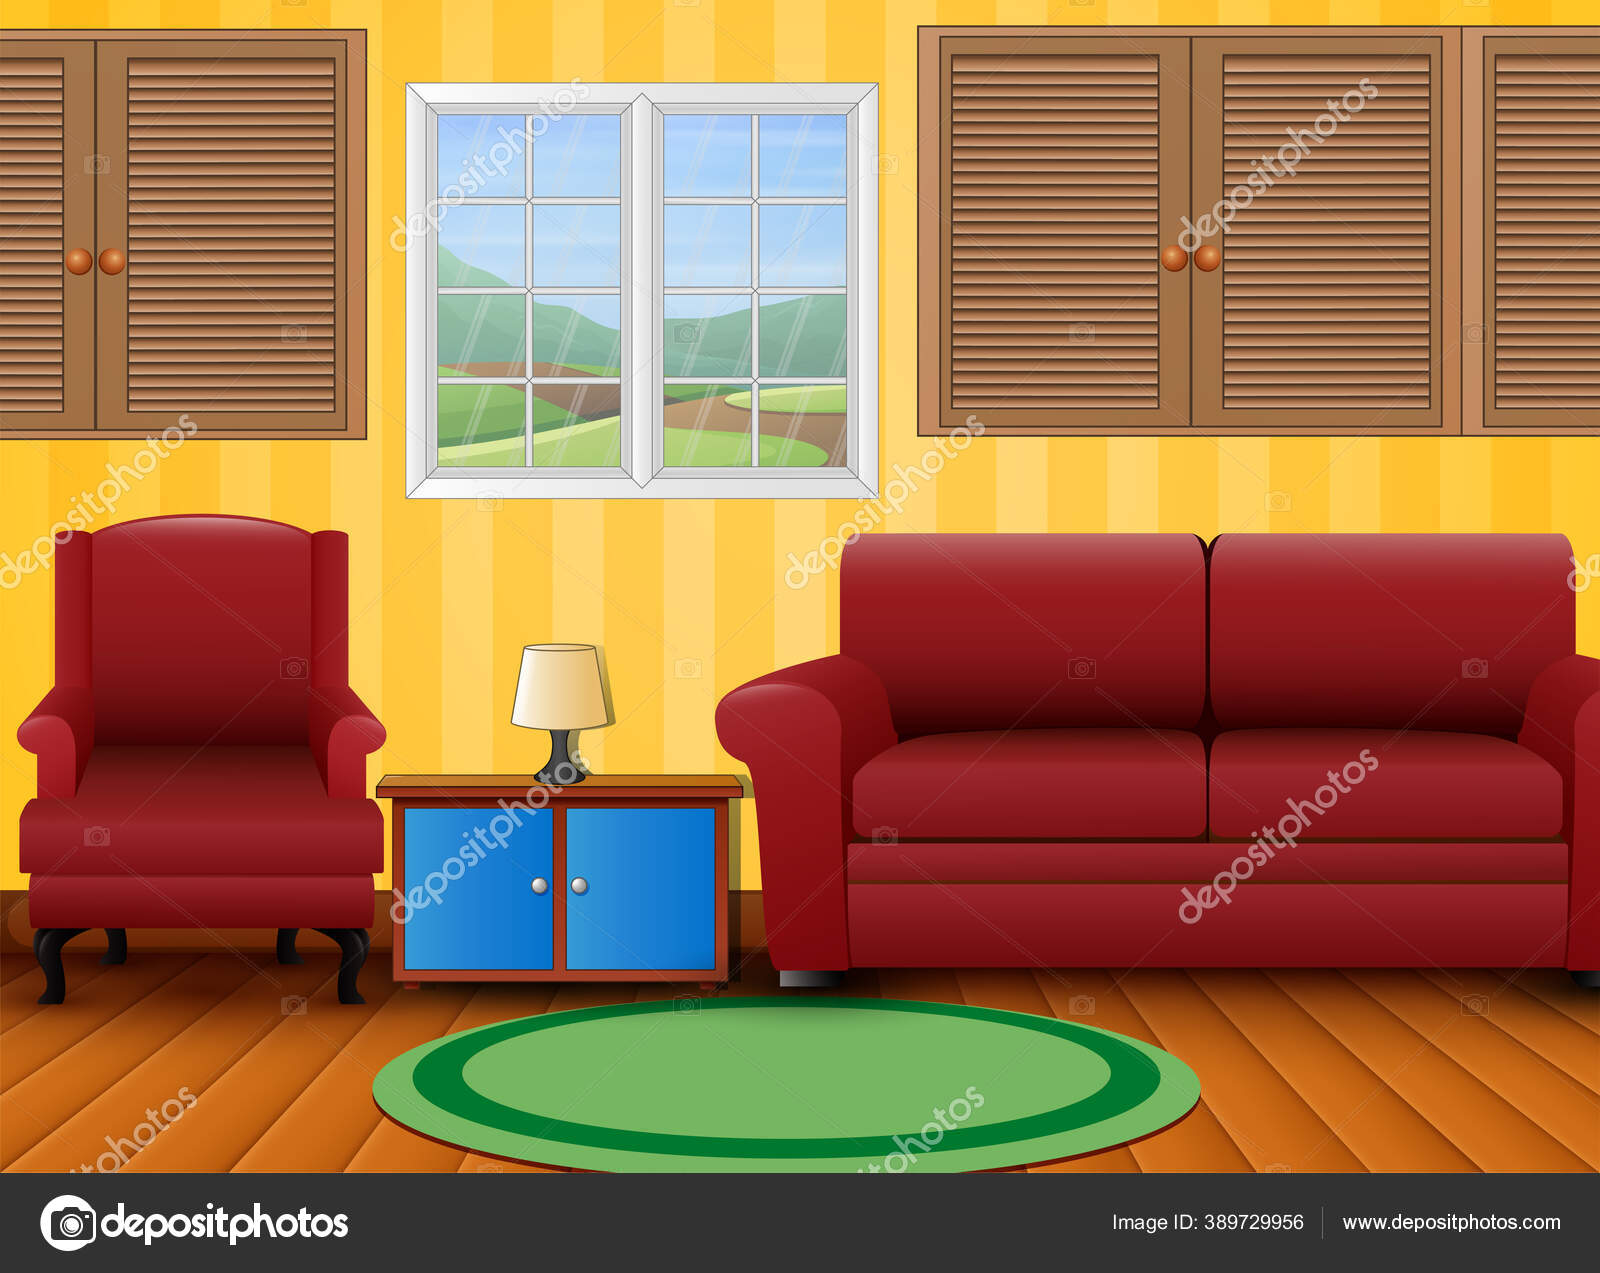 Picture of: Red Sofa Set Side Table Room Stock Vector C Dualoro 389729956